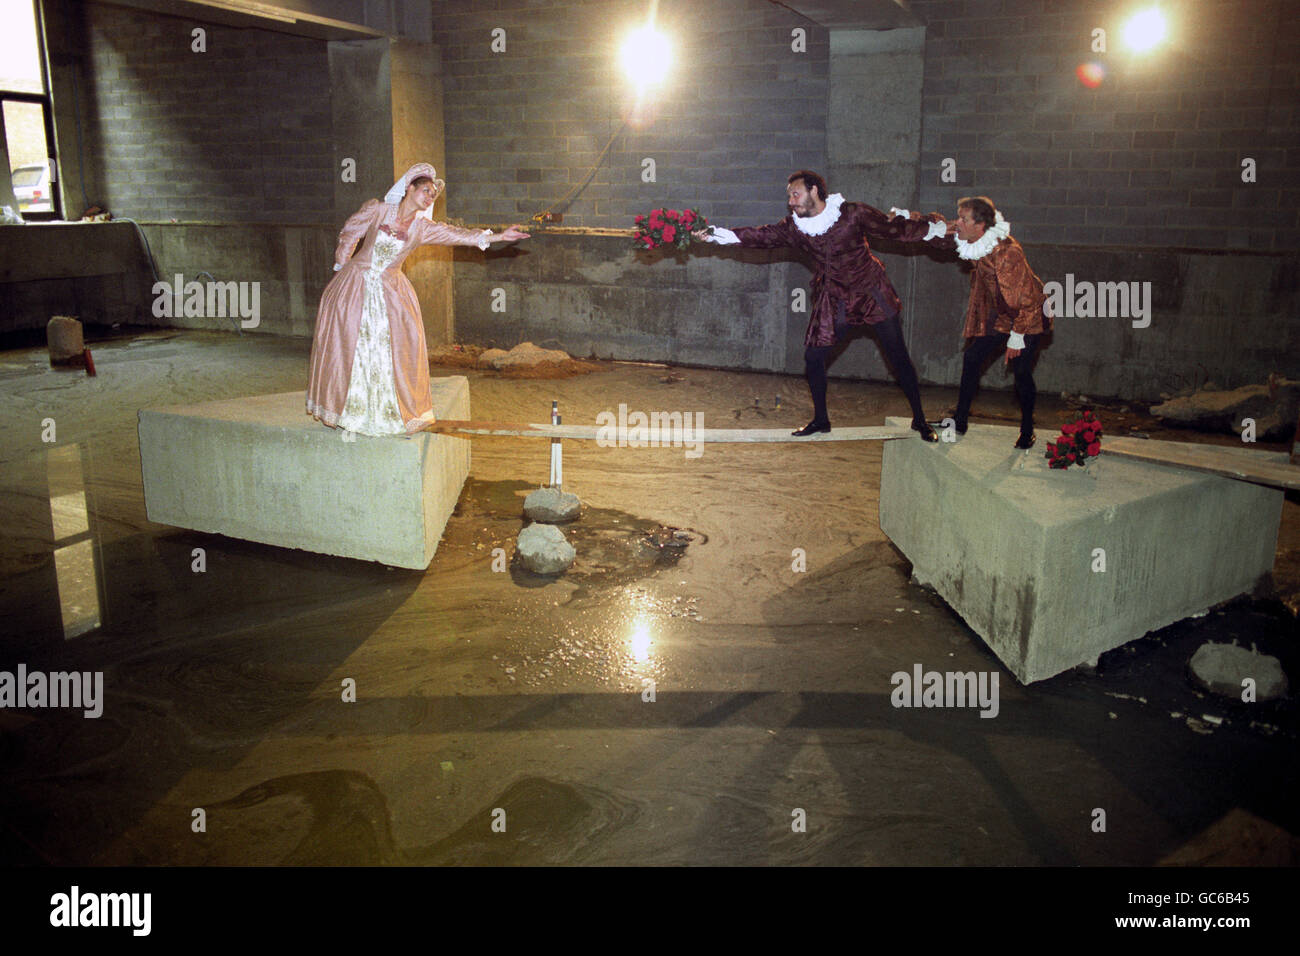 Theatre - Rose Theatre's First Performance - London - Stock Image